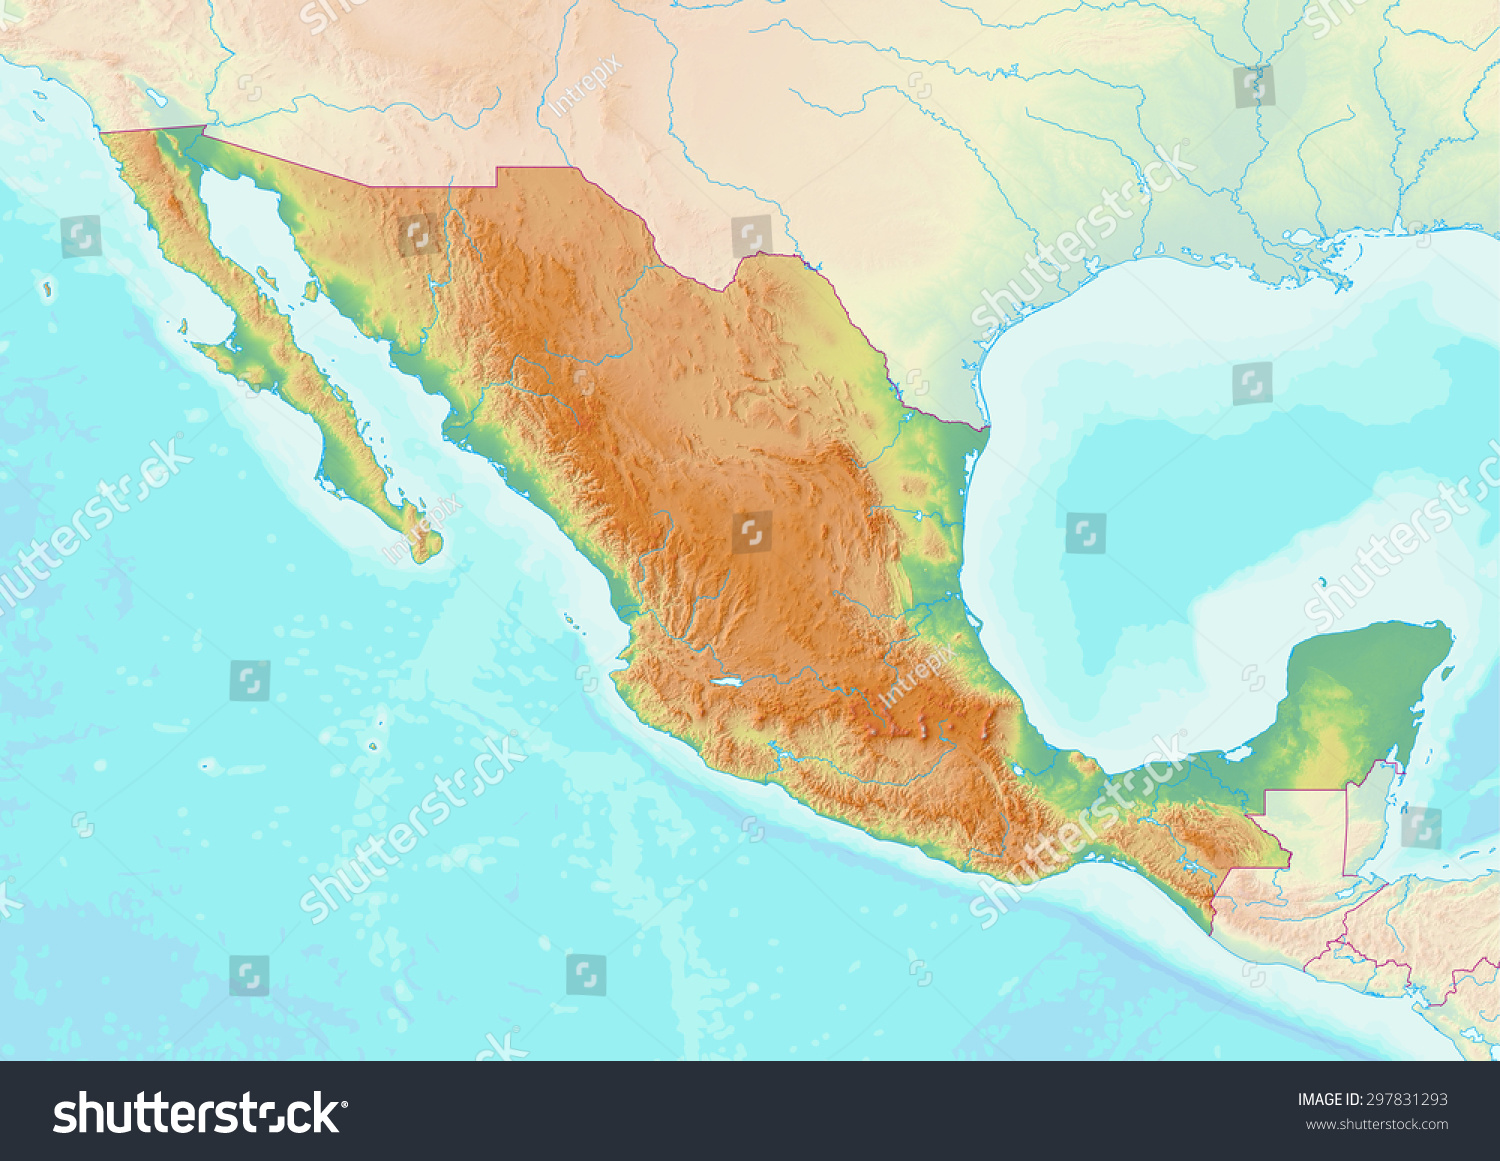 topographic map of mexico with shaded relief and elevation colors elements of this image furnished